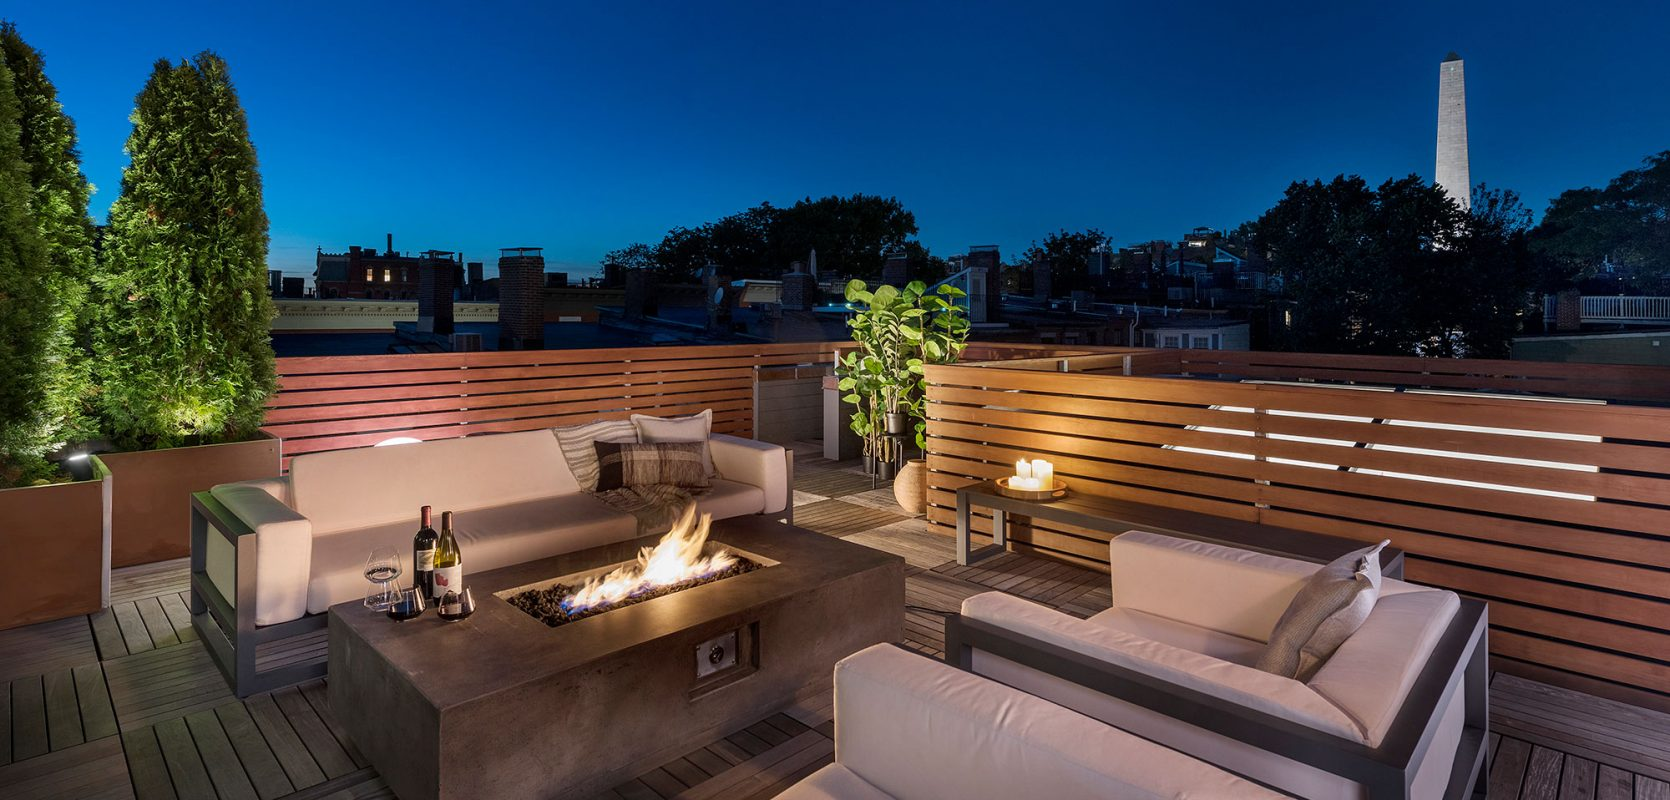 furnished rooftop of row house with gas firepit at dusk